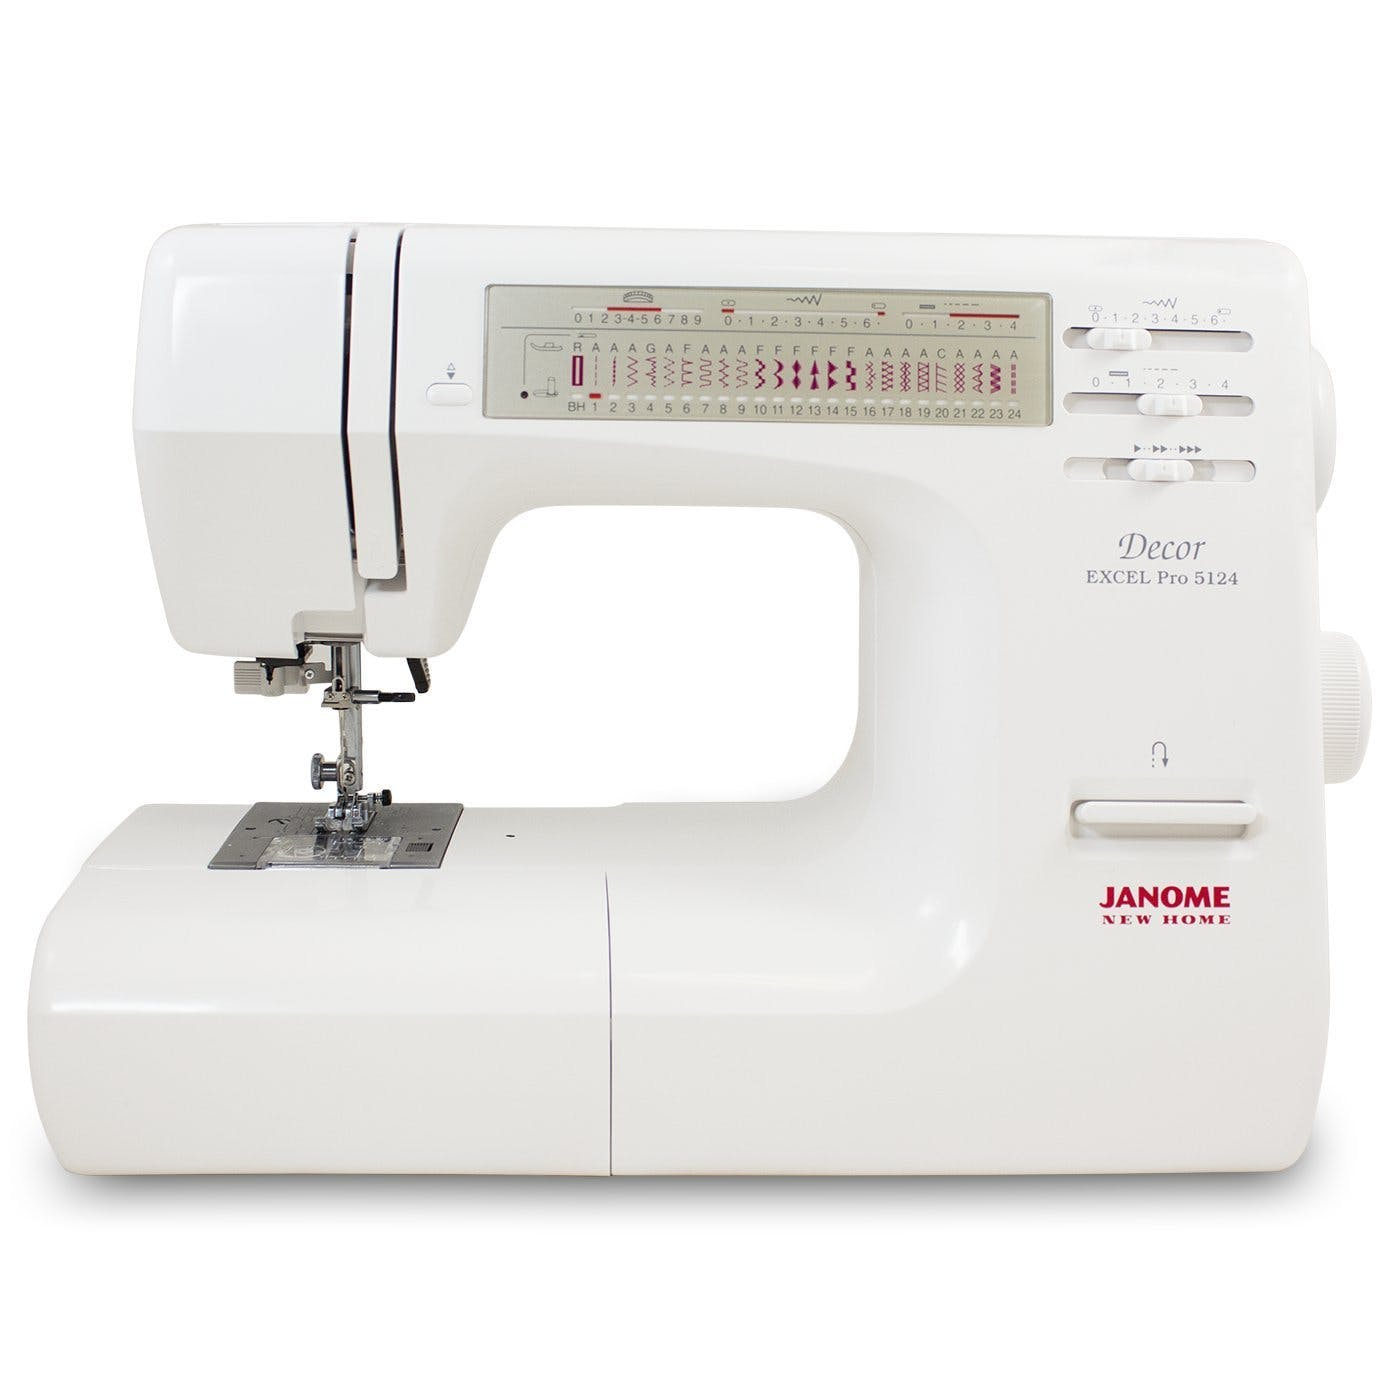 Quilting Accessories For Janome Decor Excel Pro 5124